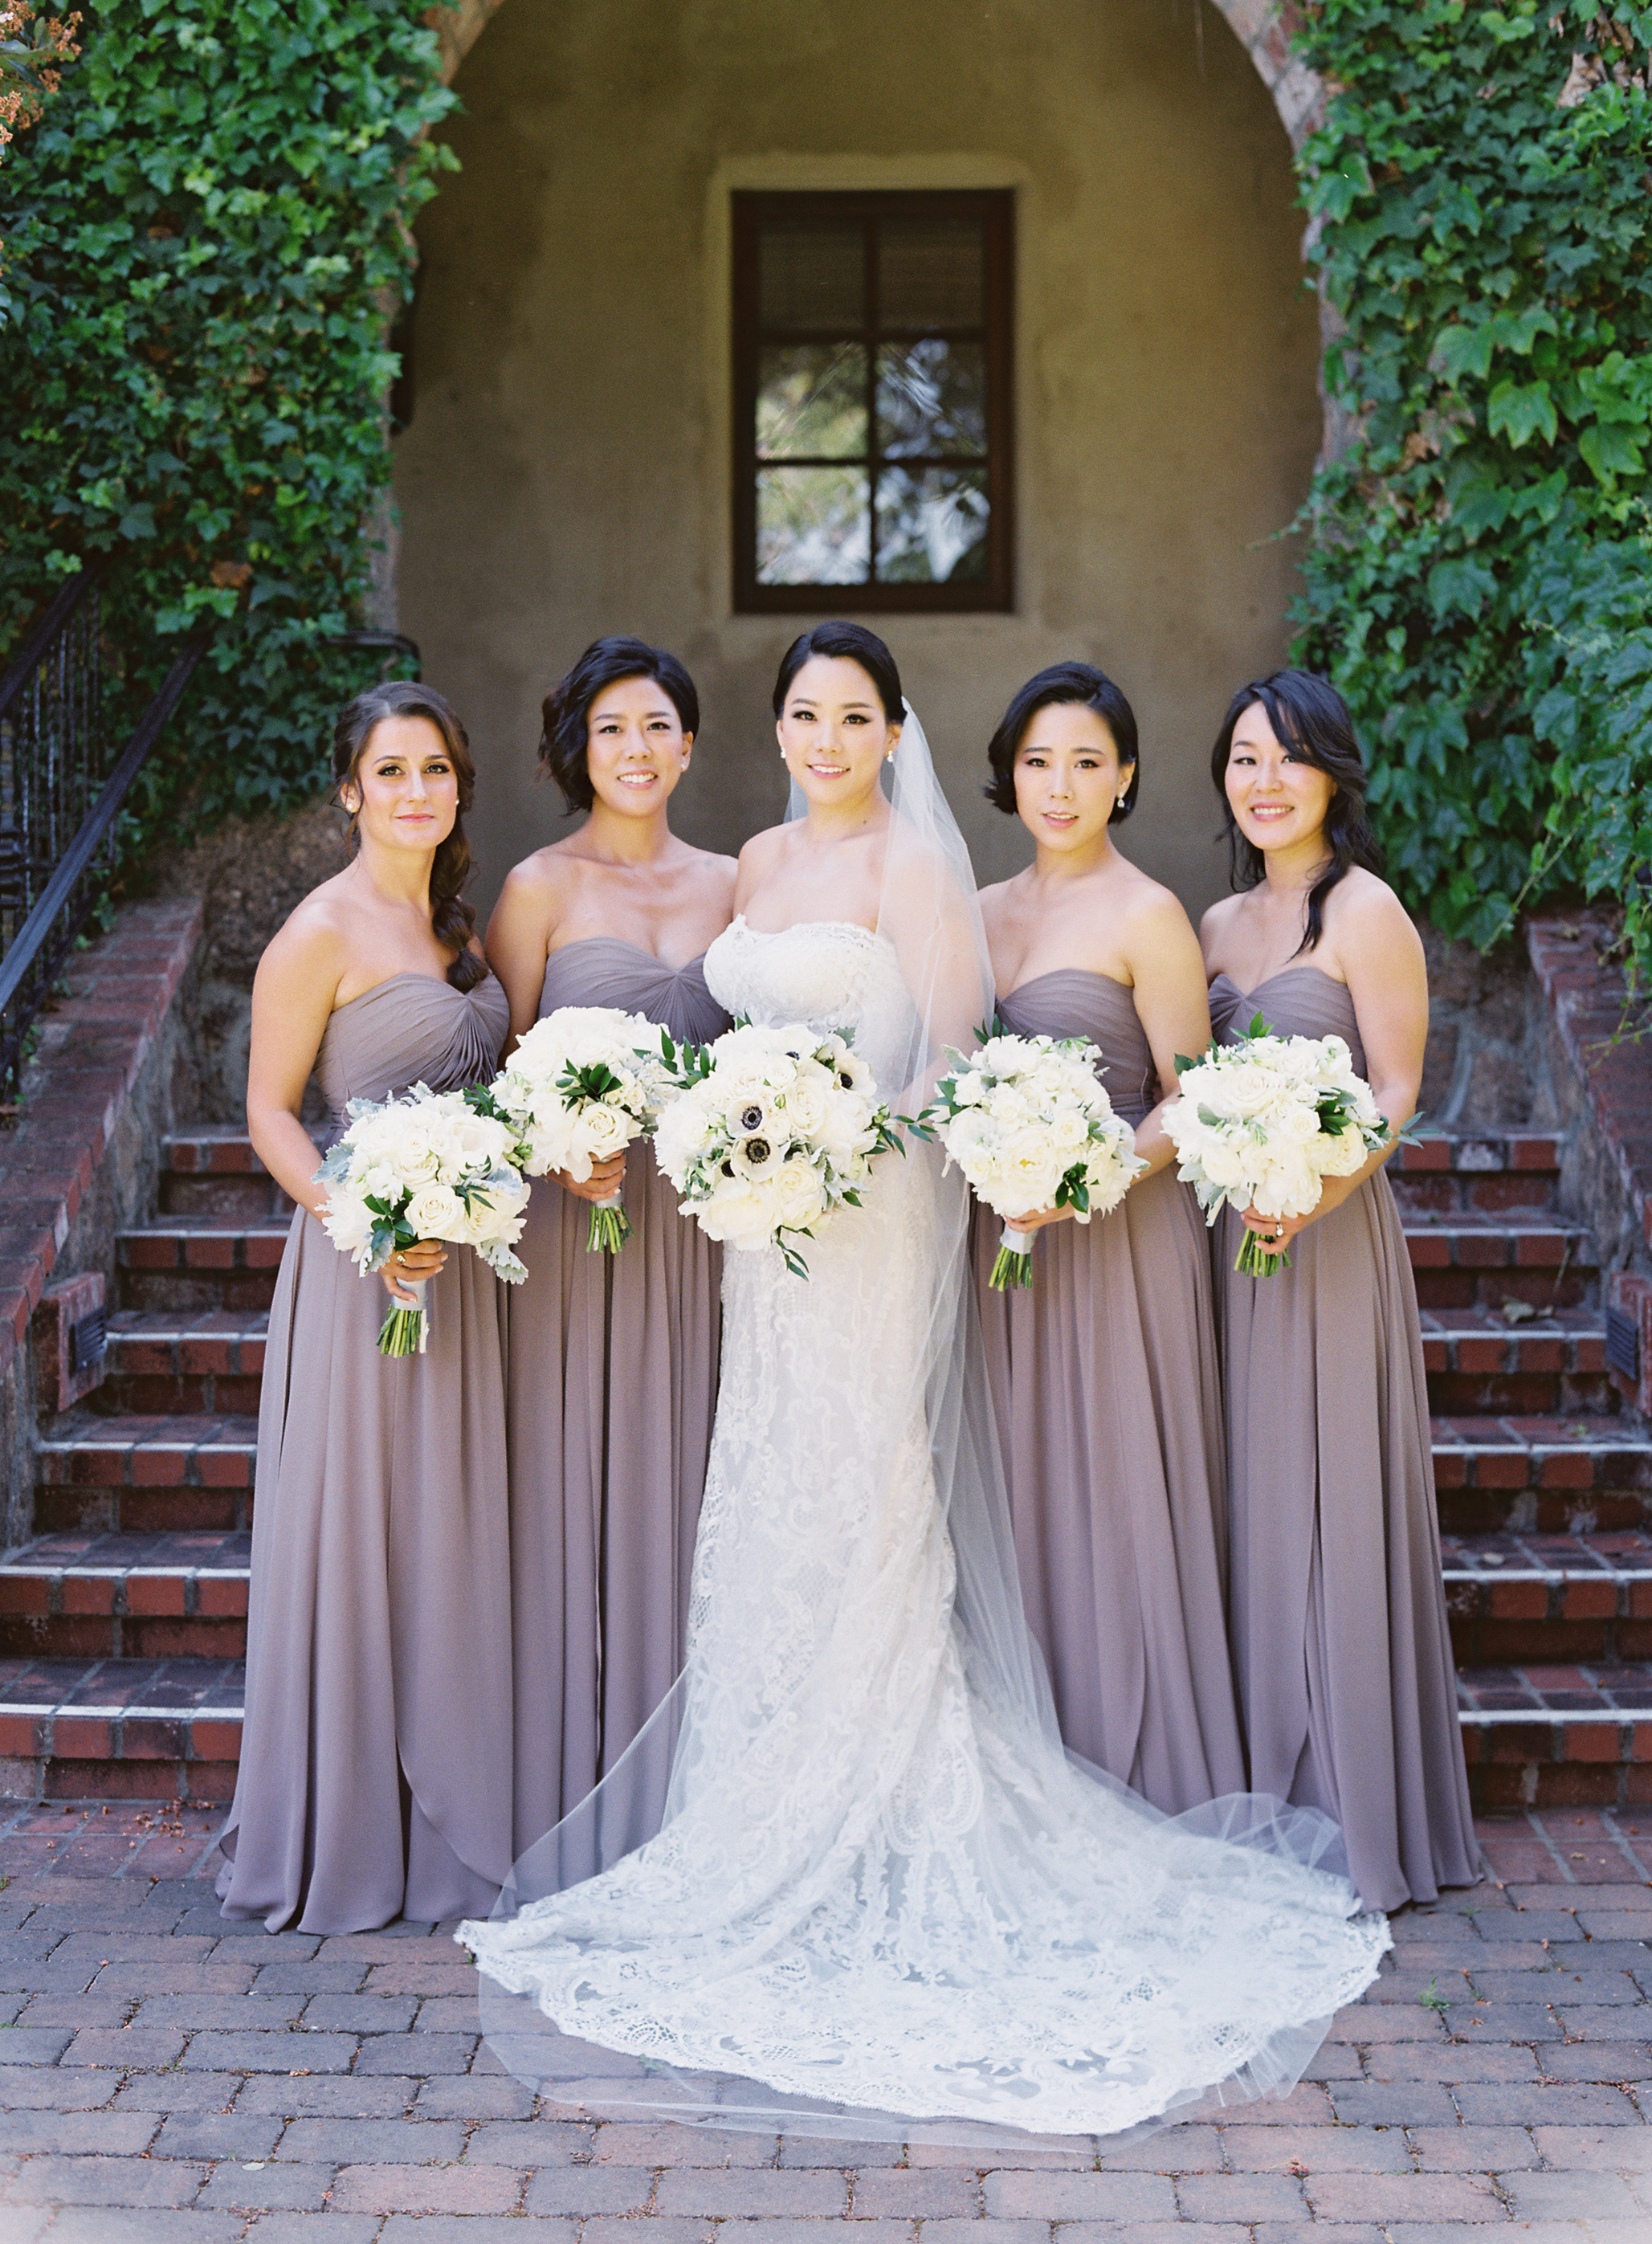 Meghan Mehan Photography - Sonoma Golf Club Wedding - California Film Wedding Photographer - 027.jpg